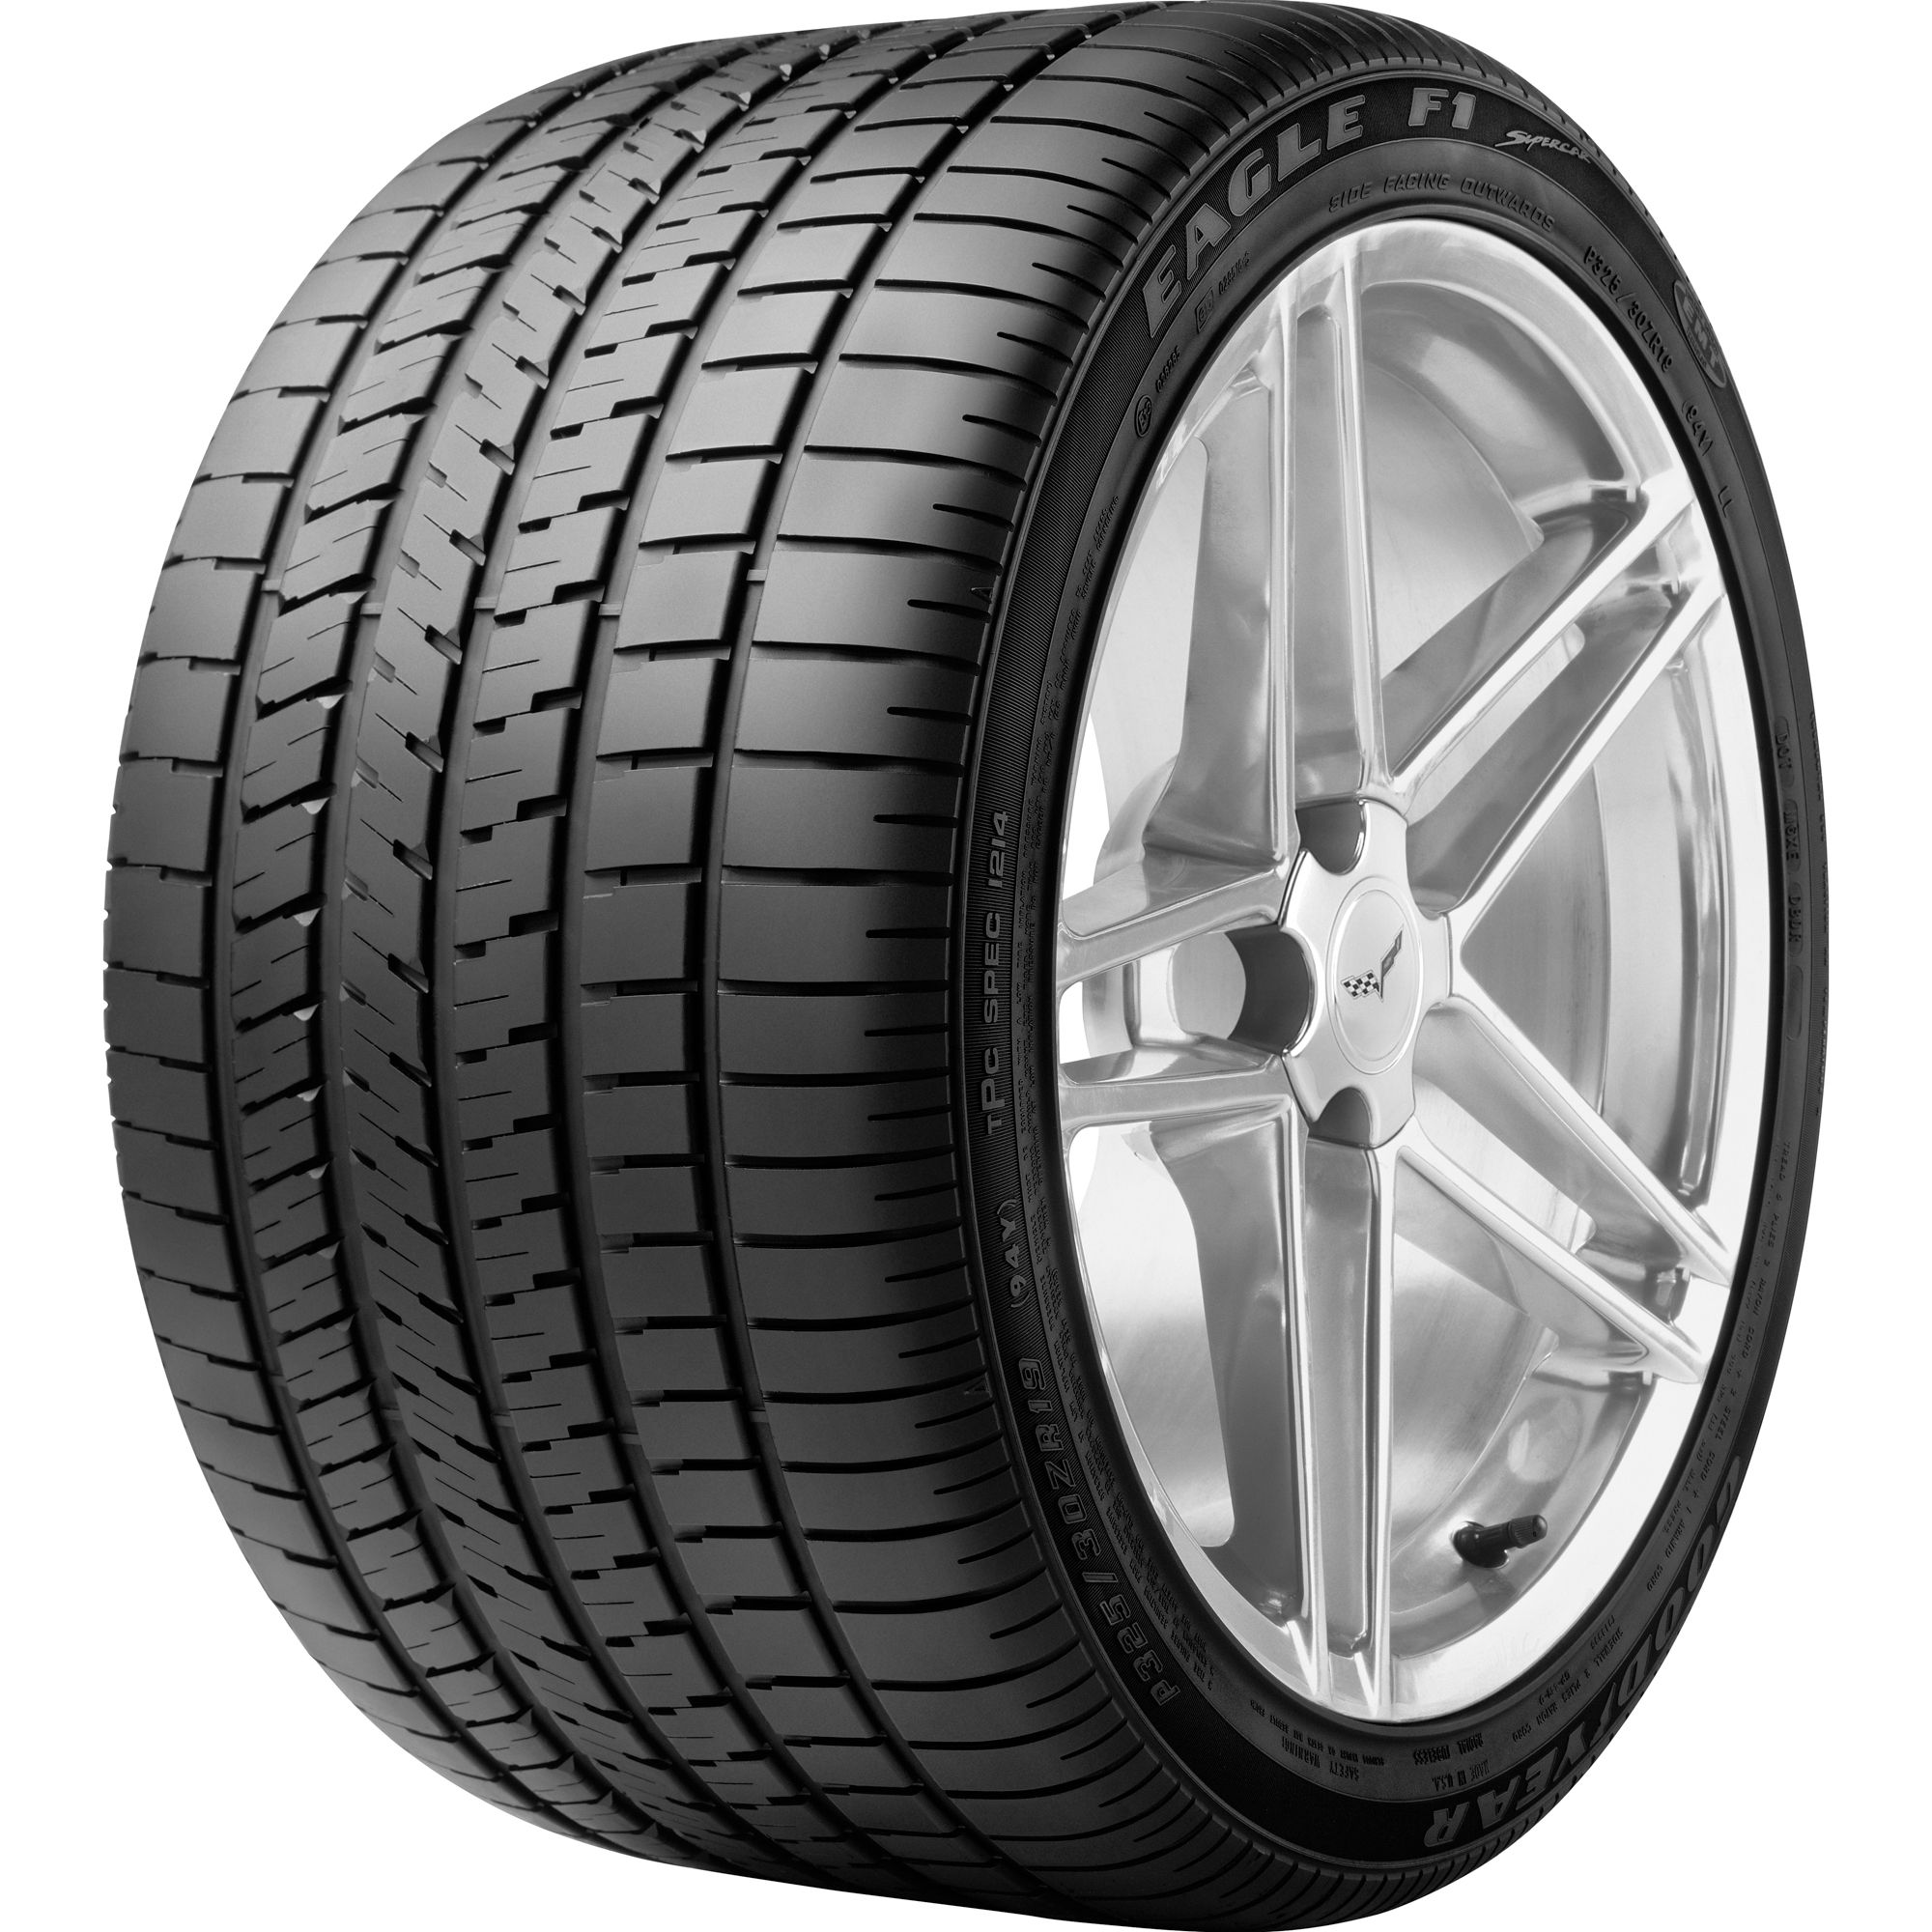 EAGLE F1 SUPERCAR Tire- P285/35R20 92Y BW